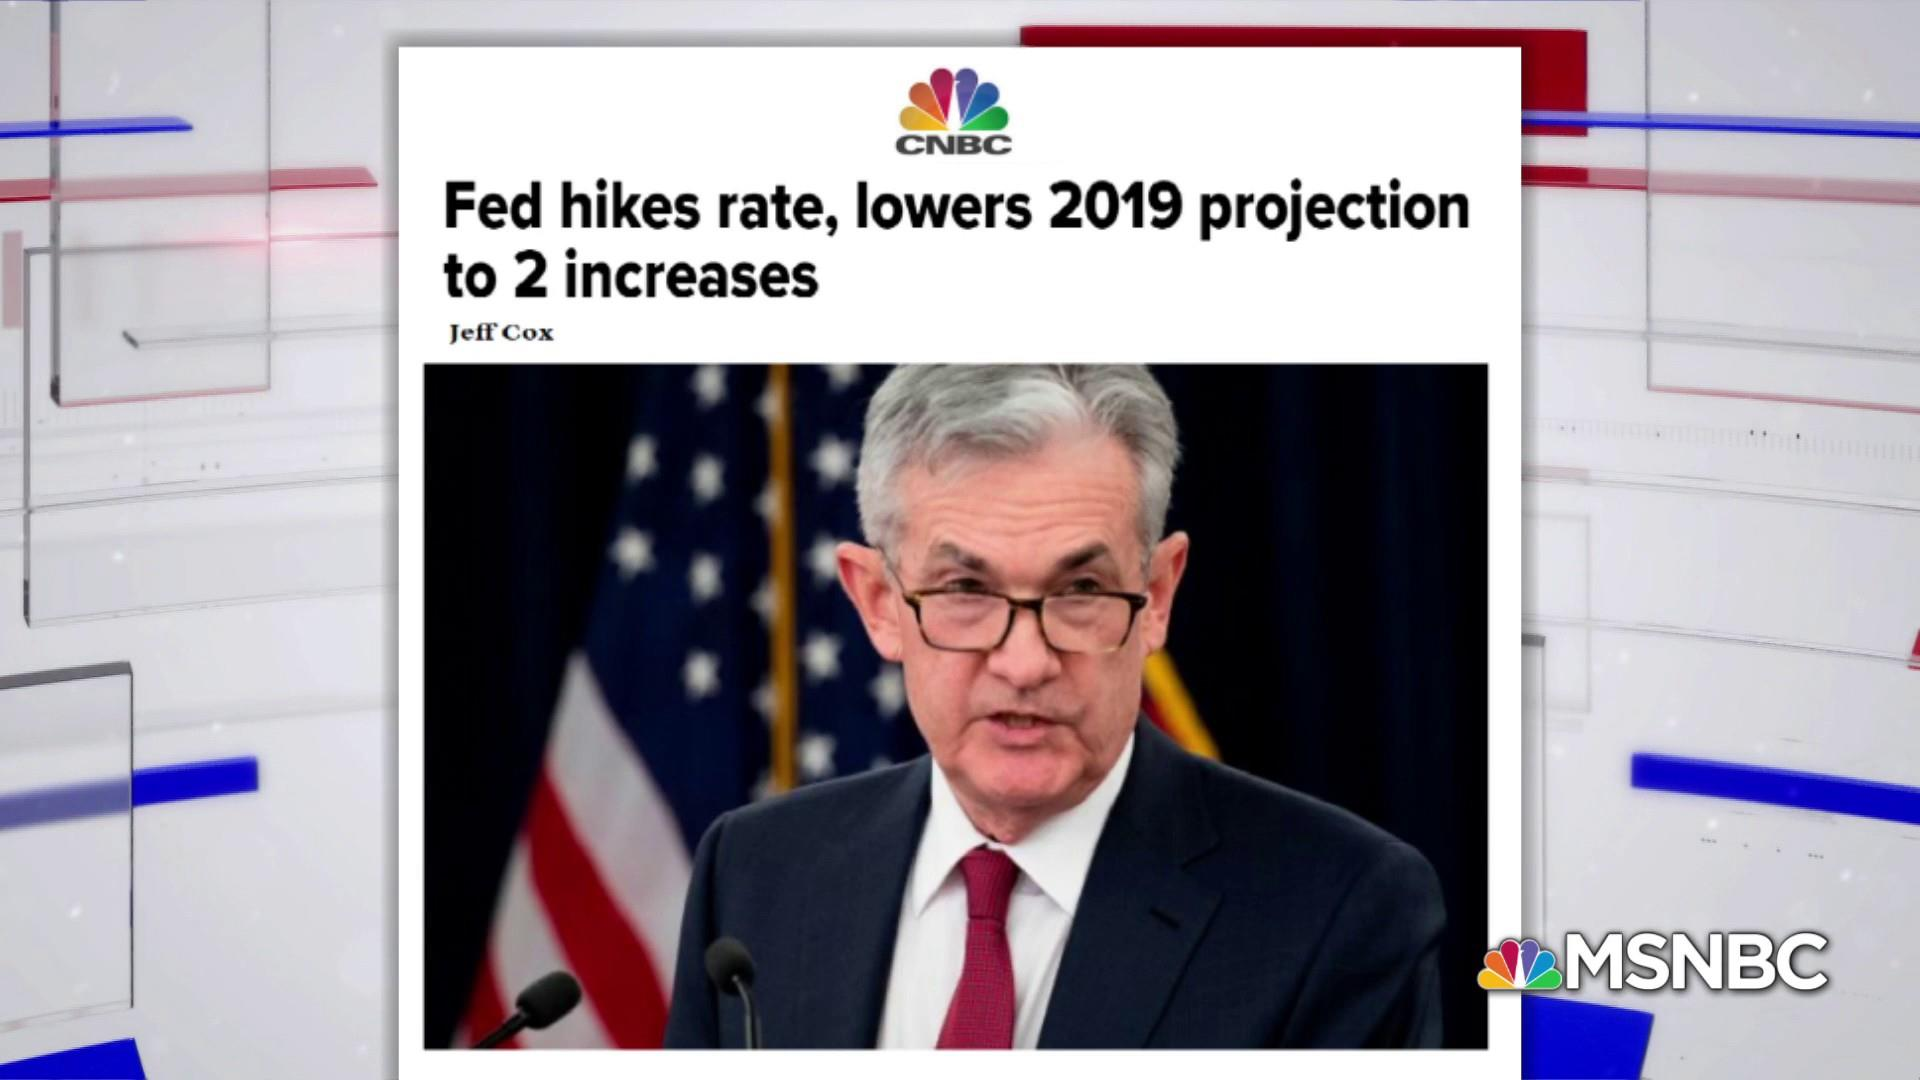 What can we expect after the Fed's interest rate hike?